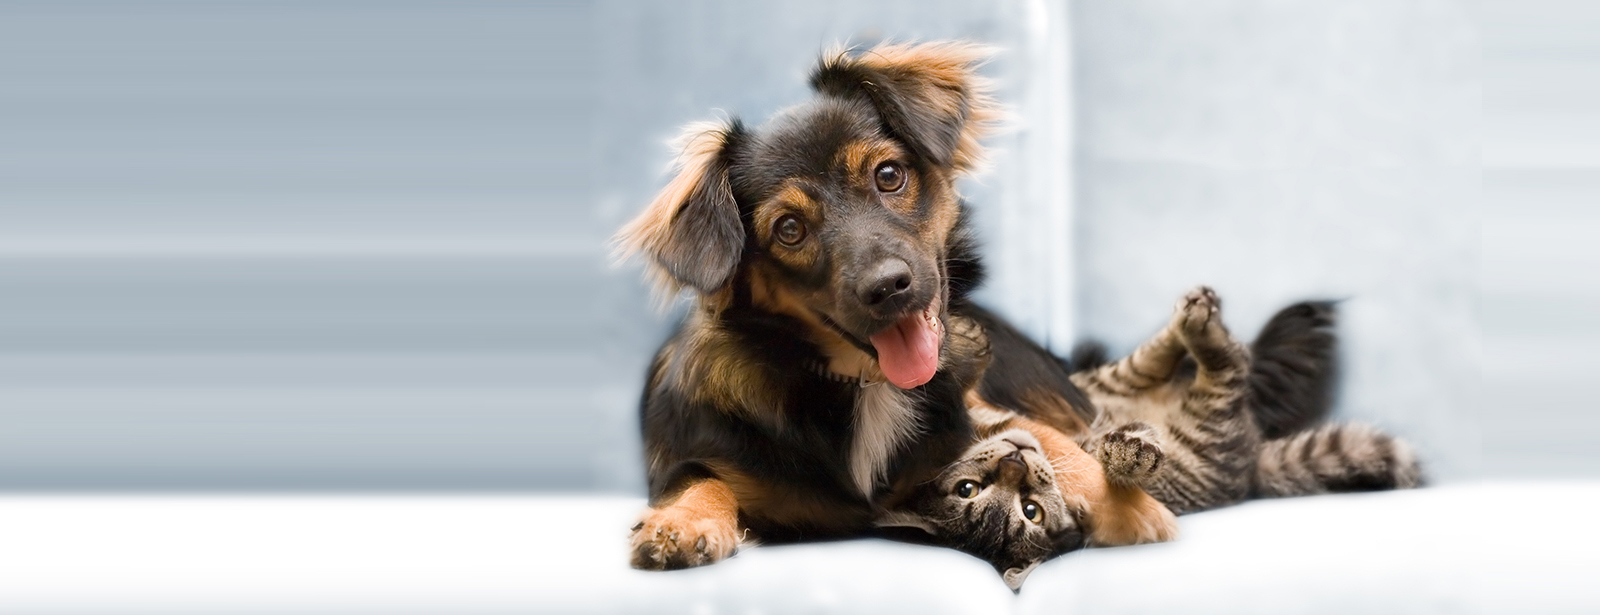 Fun Ways to Celebrate Mother's Day With Your Pet!